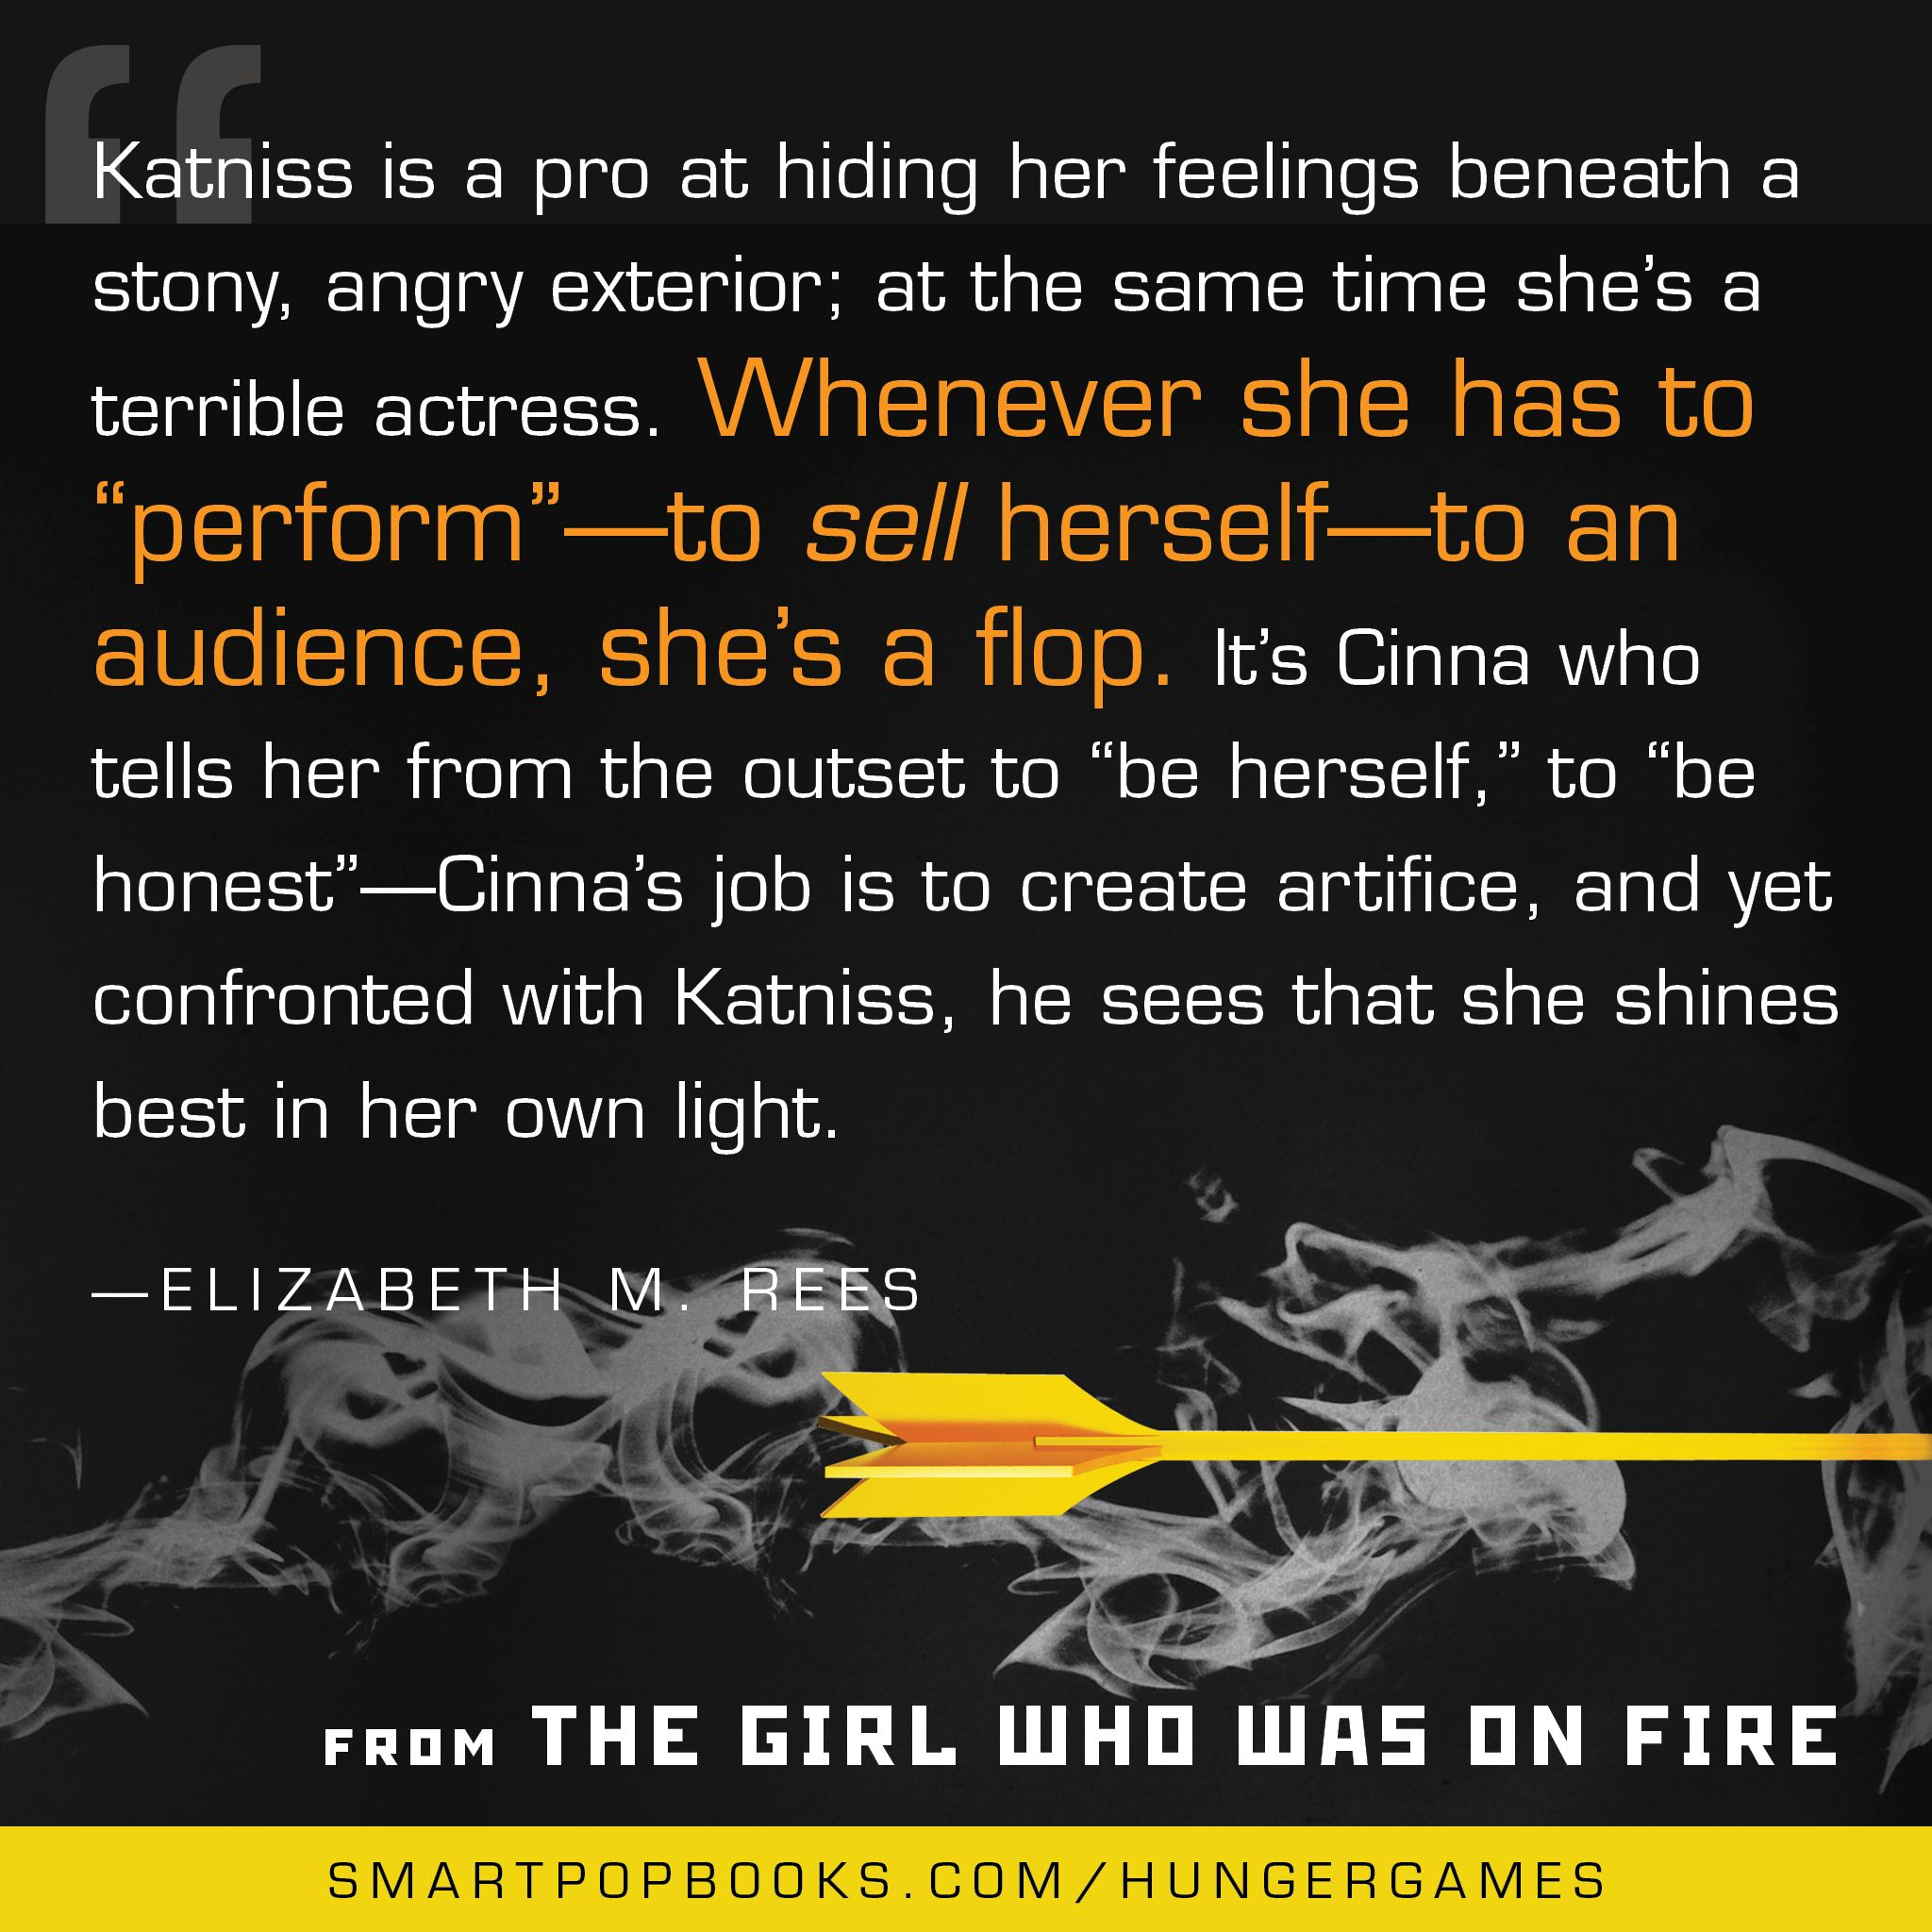 Elizabeth M. Rees on the Hunger Games trilogy from THE GIRL WHO WAS ON FIRE #HungerGames #TheHungerGames #GWWoFQuotes #TheGirlWhoWasonFire #quote #HungerGamesquote #ElizabethMRees